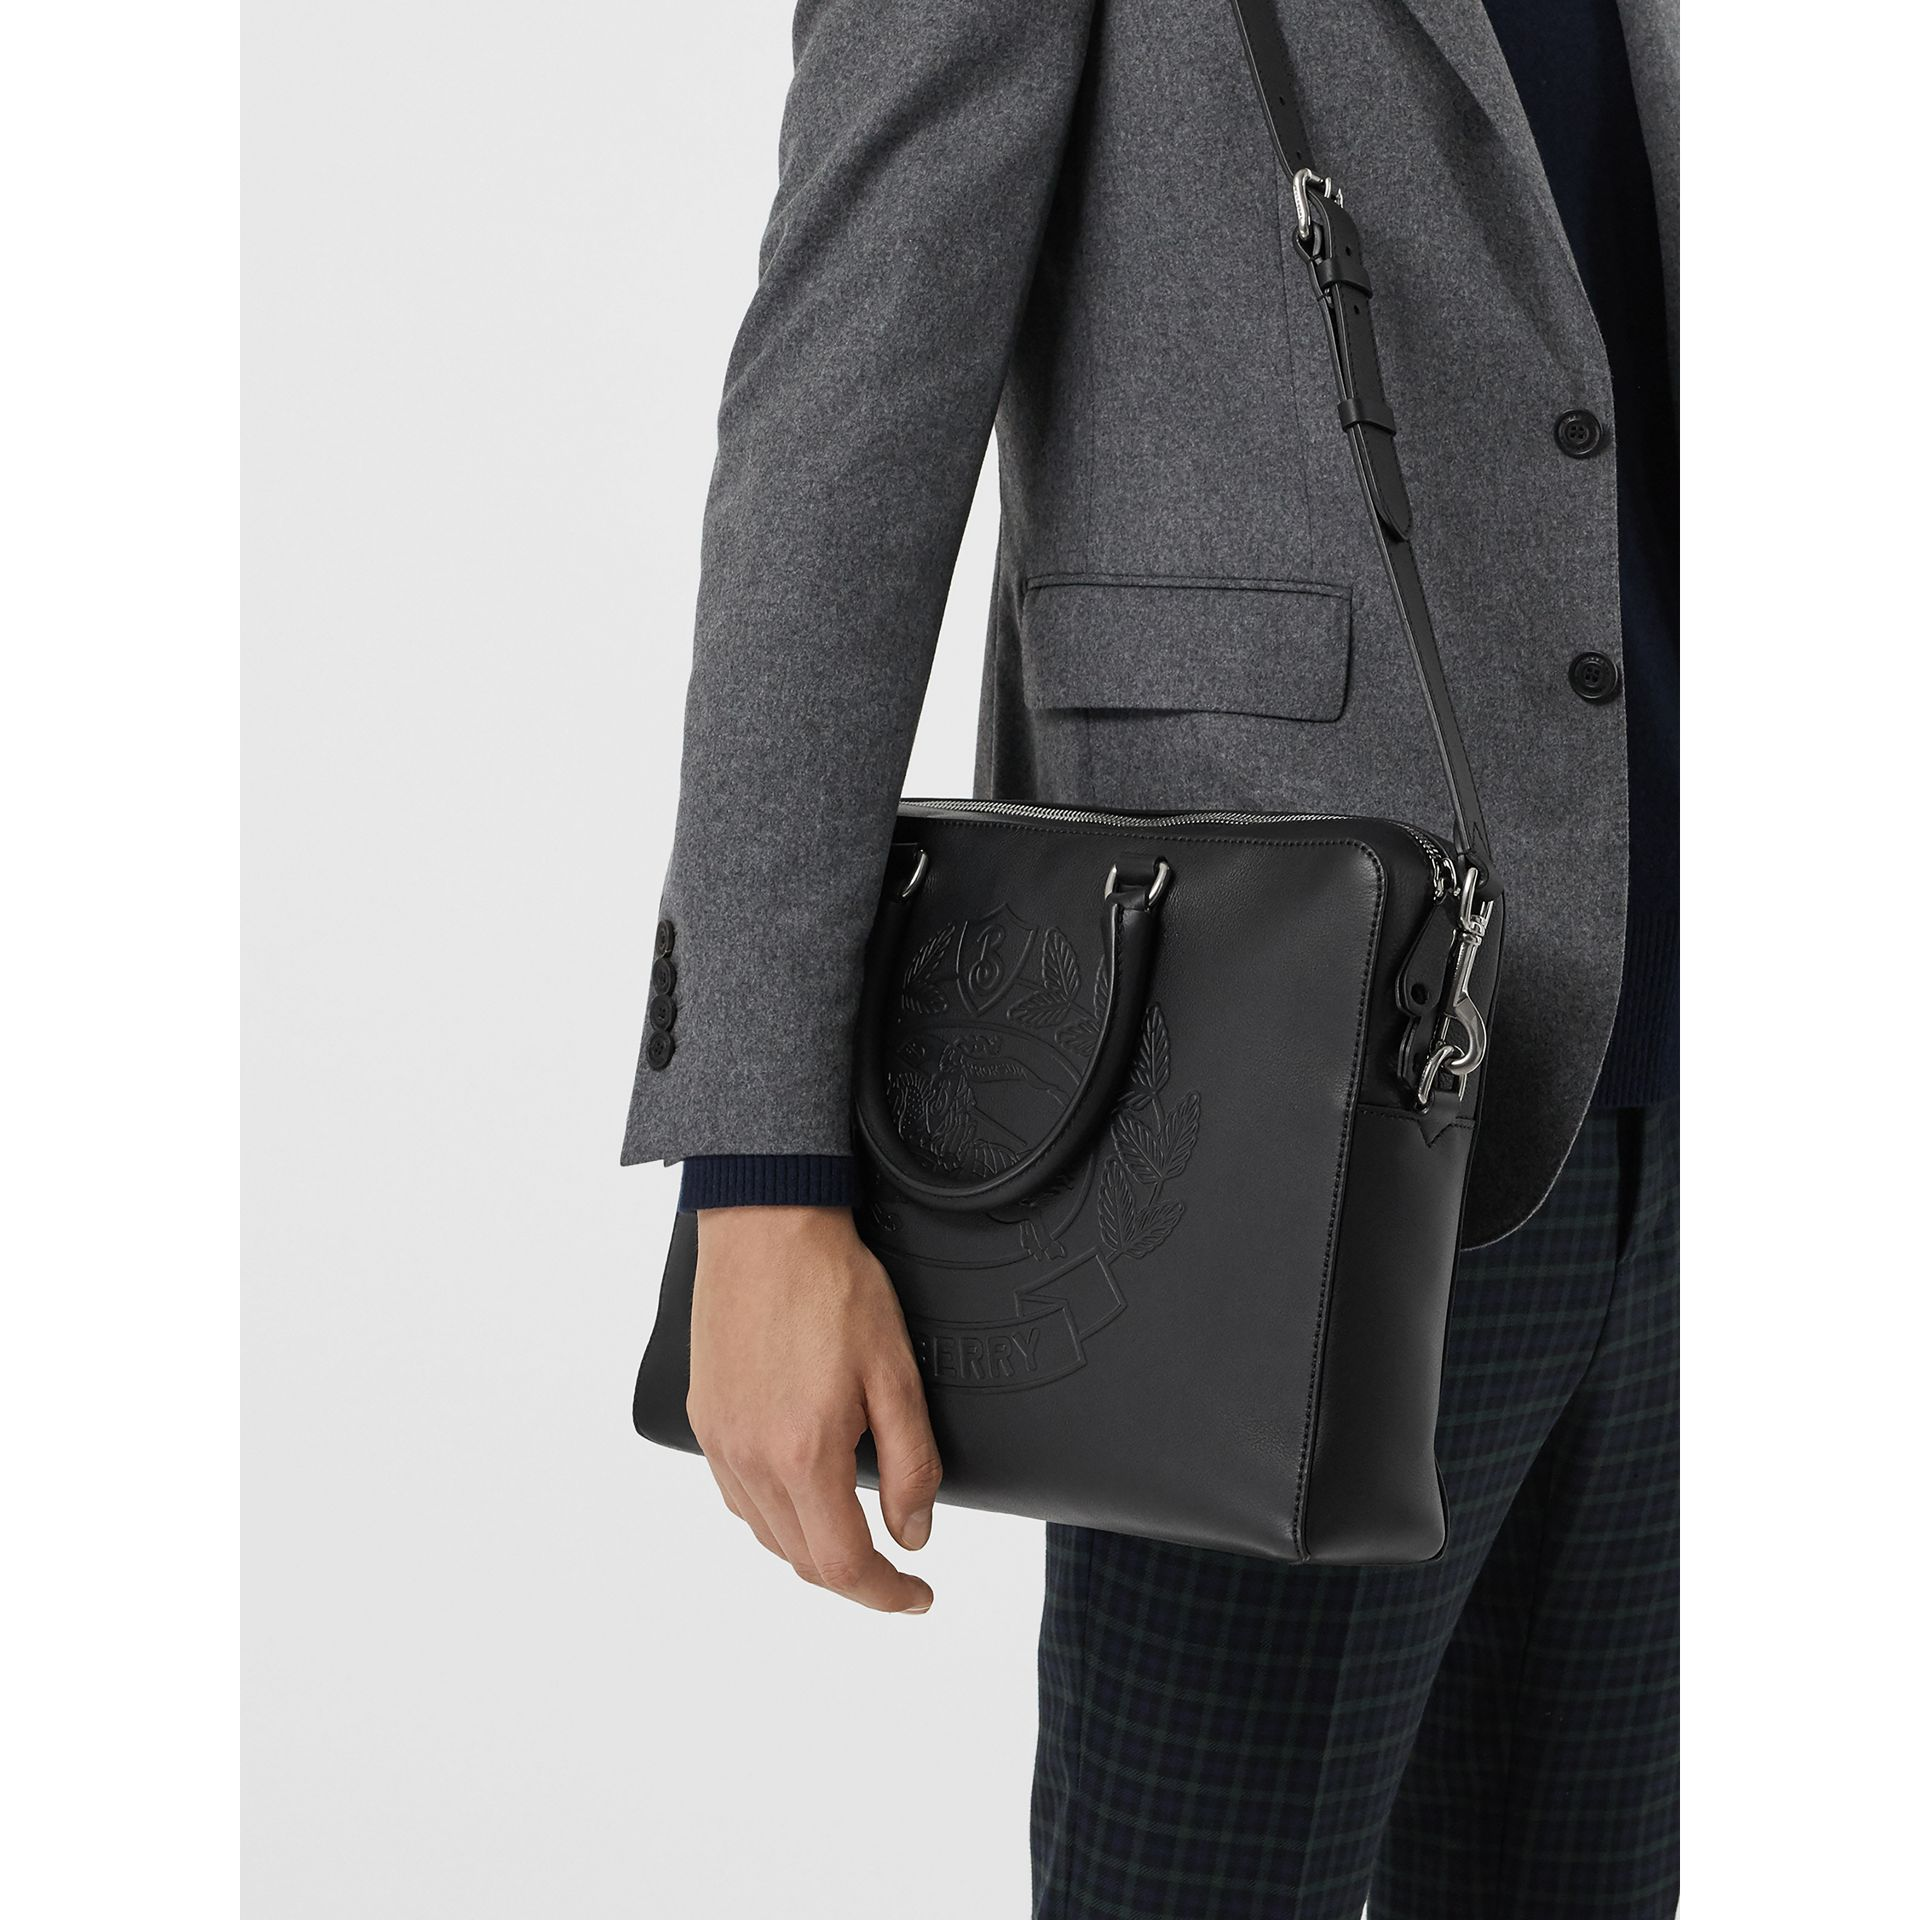 Attaché-case en cuir avec écusson estampé (Noir) - Homme | Burberry Canada - photo de la galerie 3